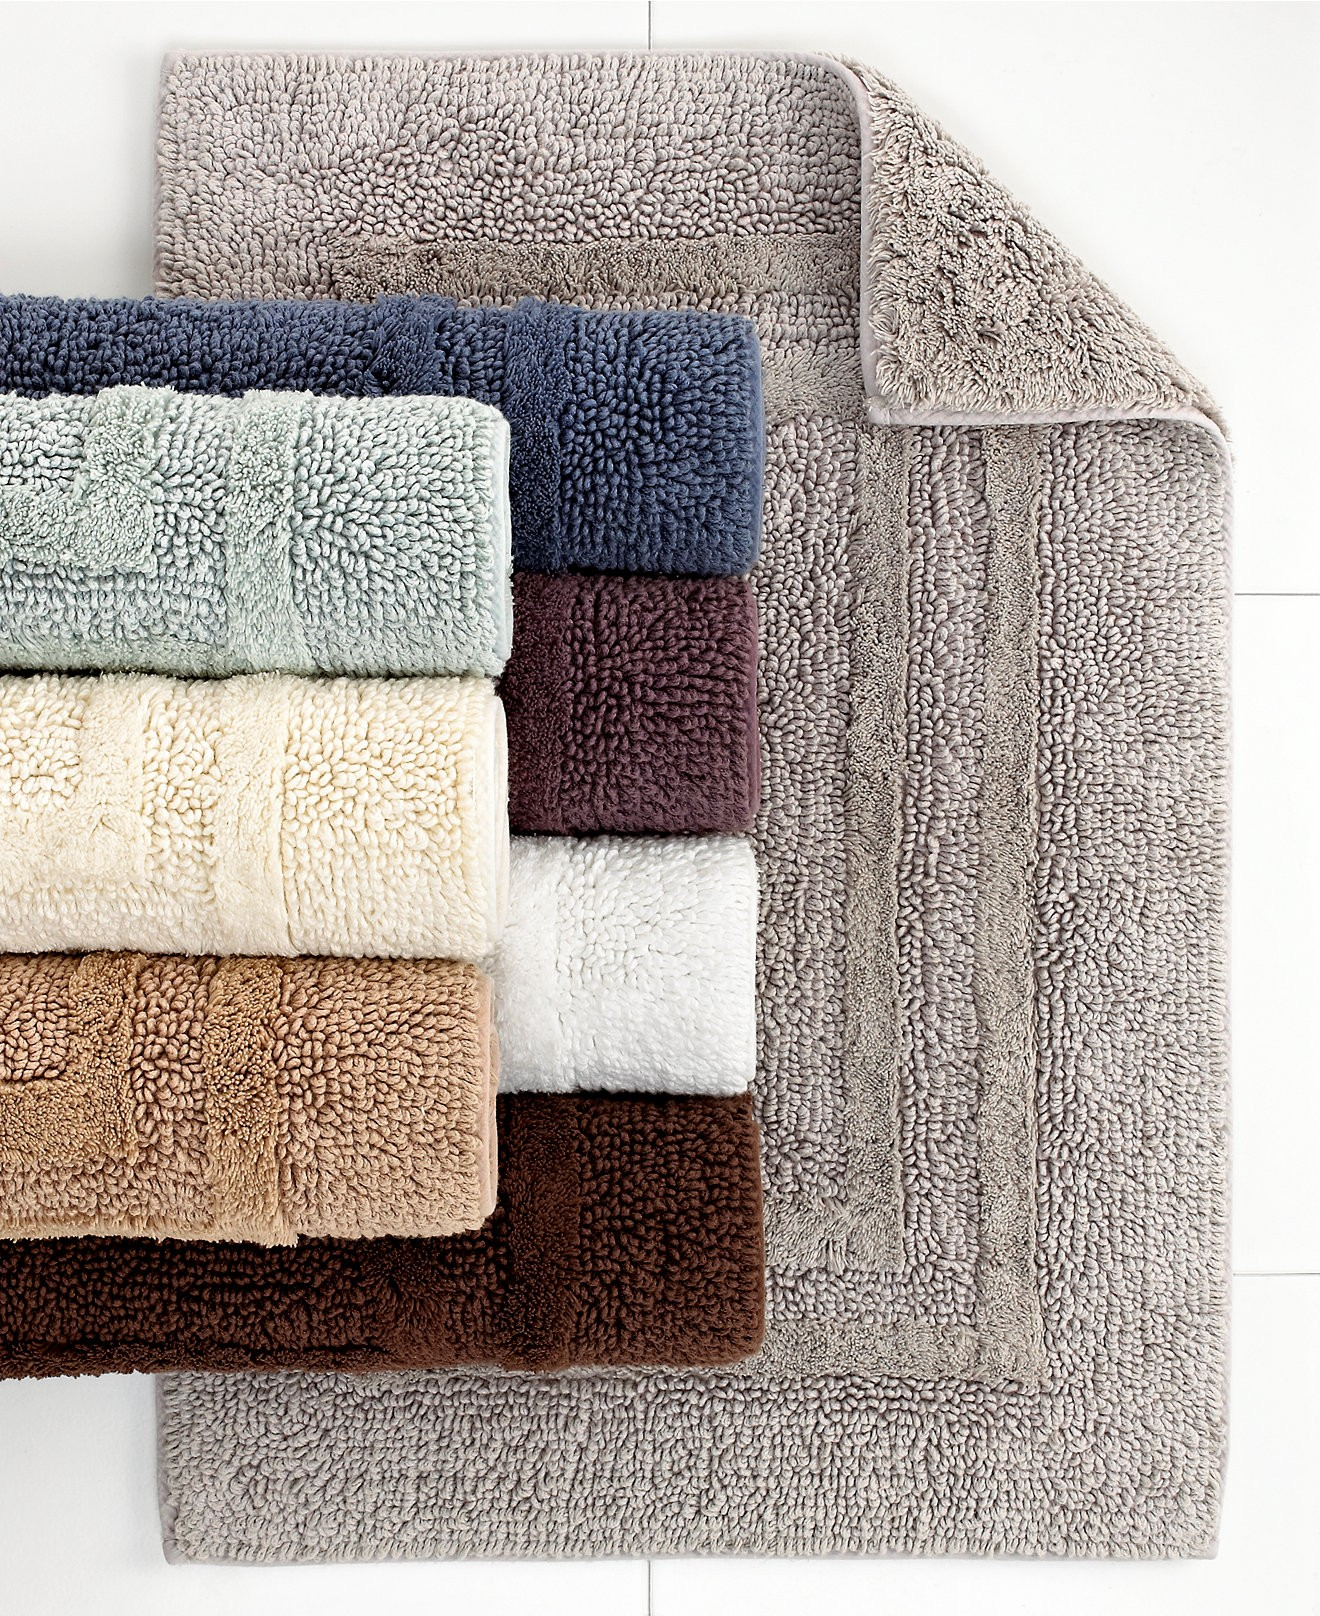 Kohls Bathroom Rugs Inspirational Hotel Collection Cotton Reversible Bath Created Photo